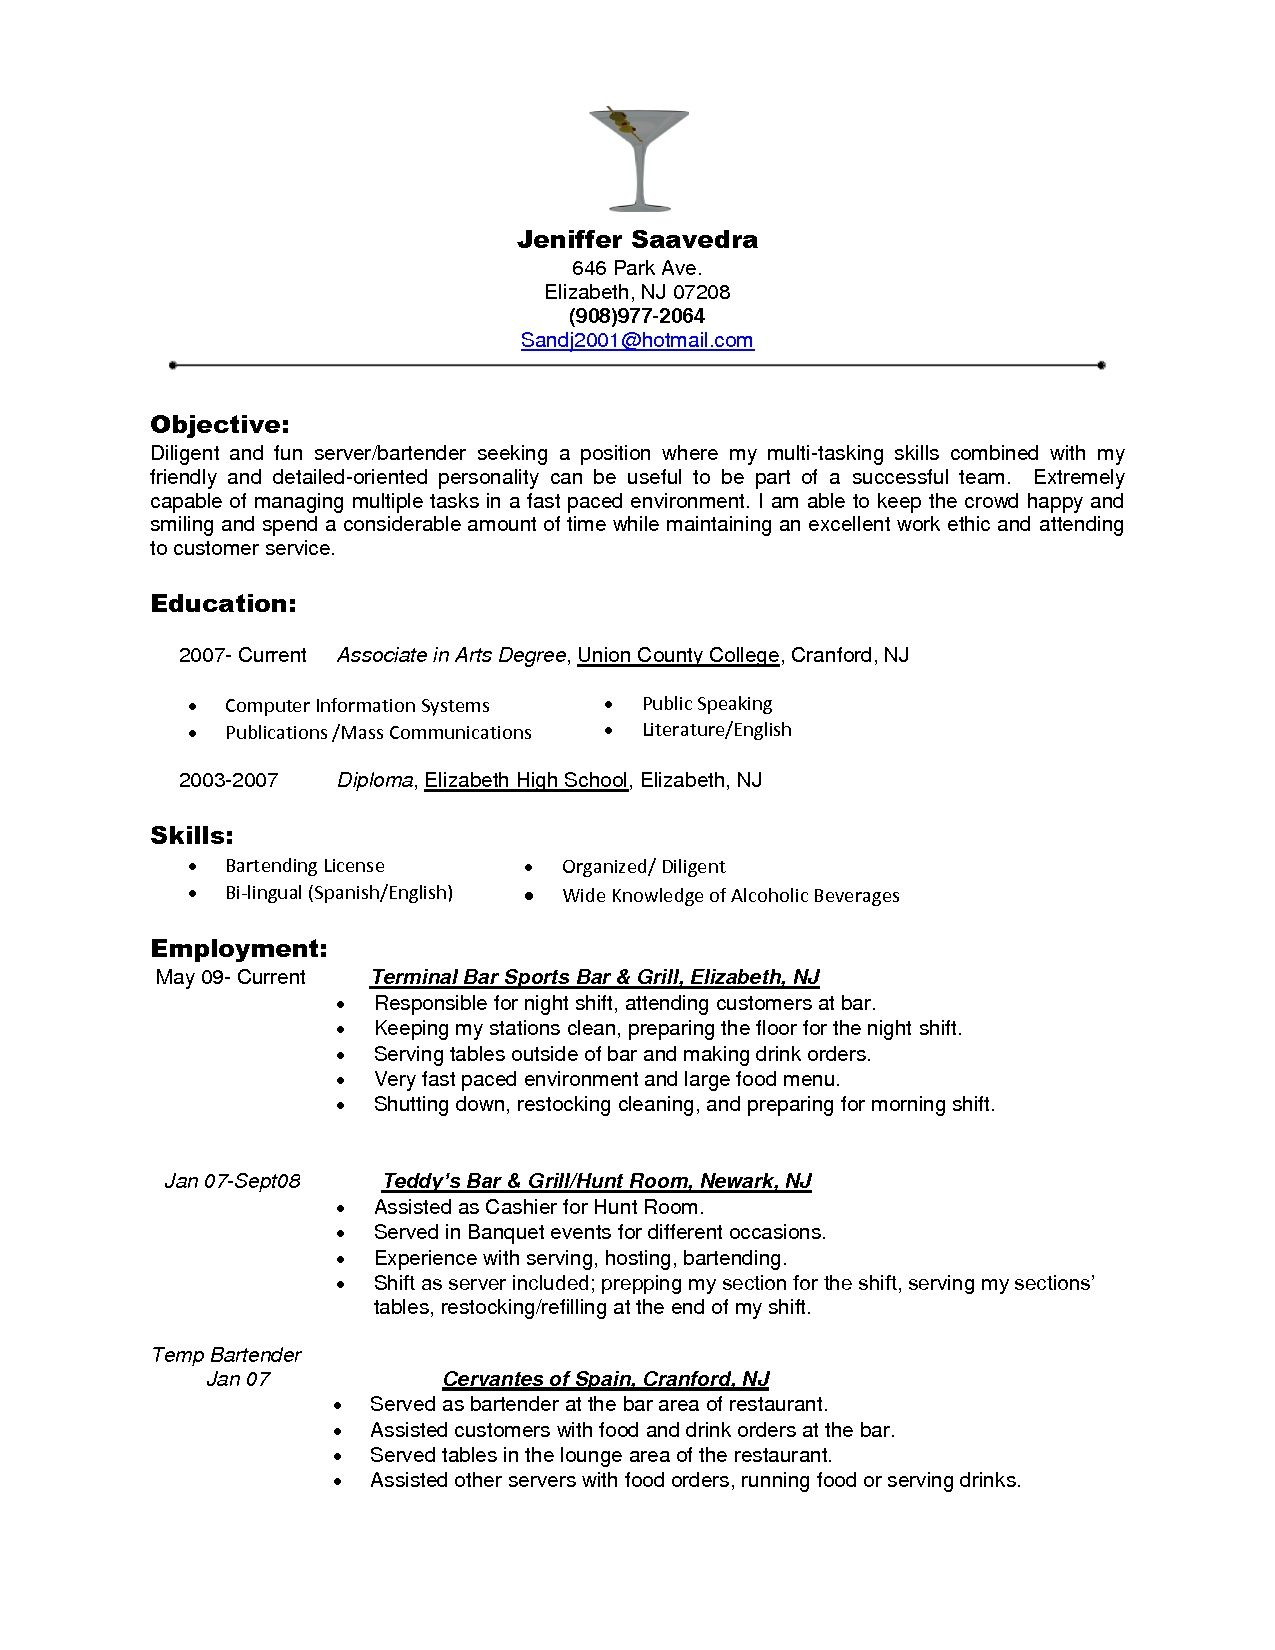 Objective In A Resume Bartender Objectives Resume  Bartender Objectives Resume Will